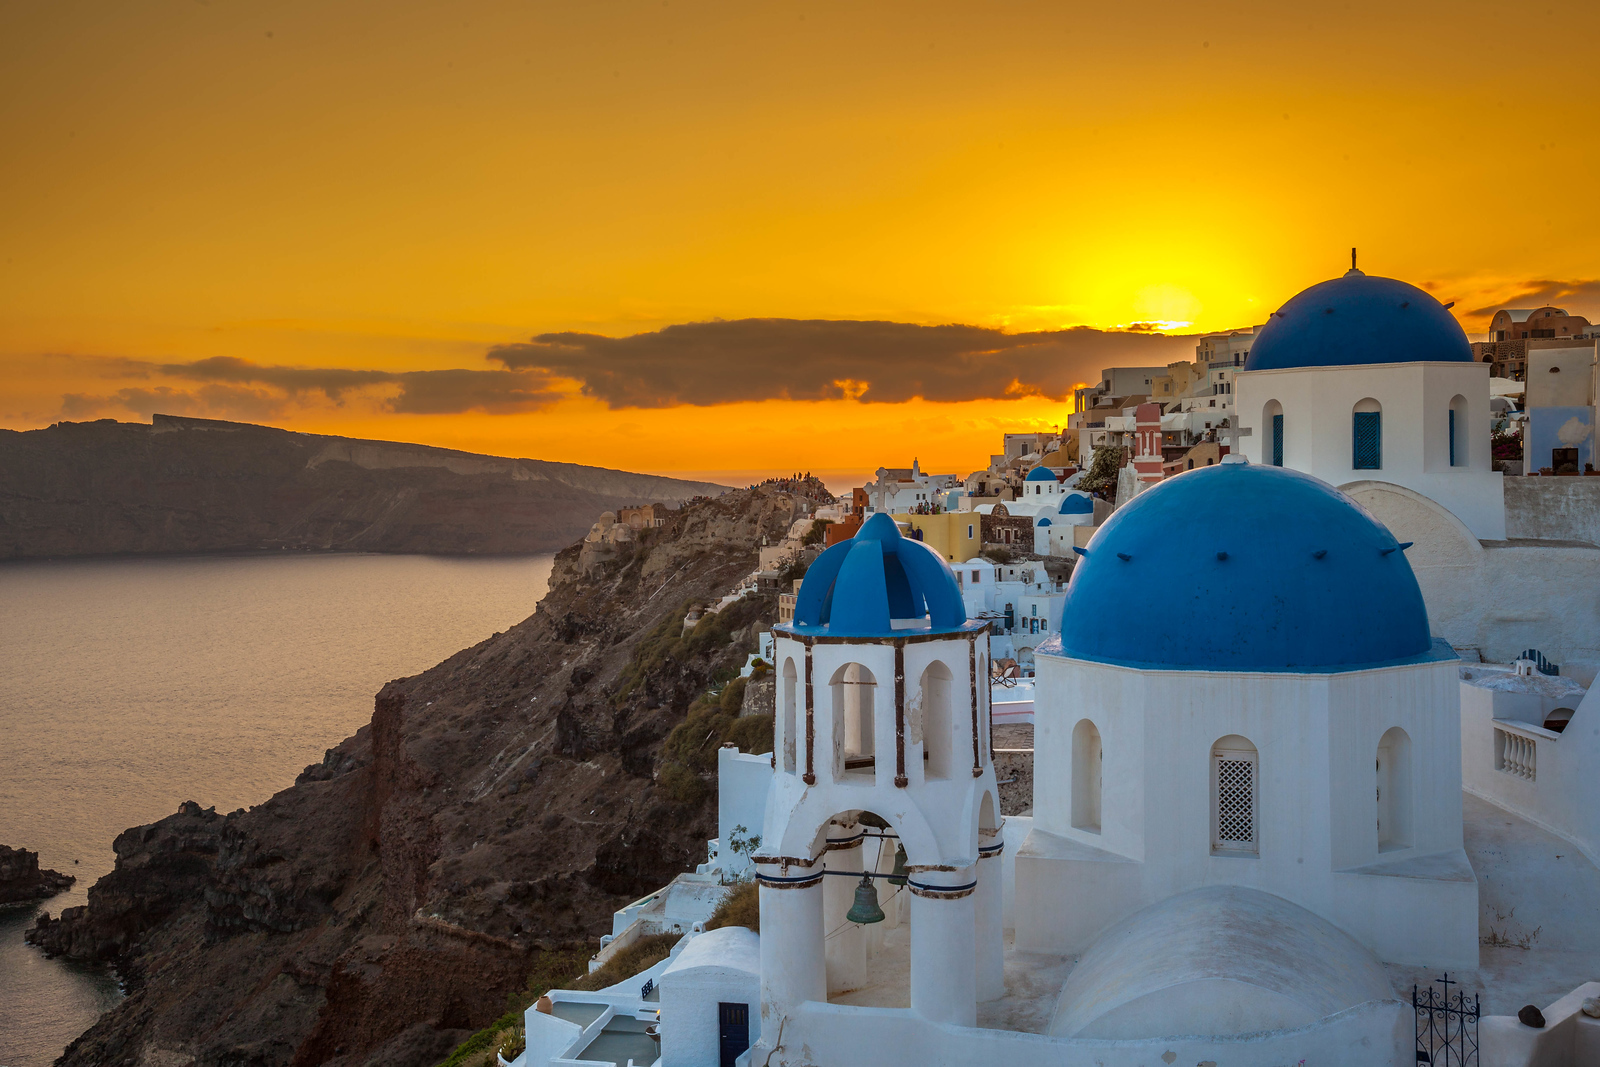 Goodnight from Santorini